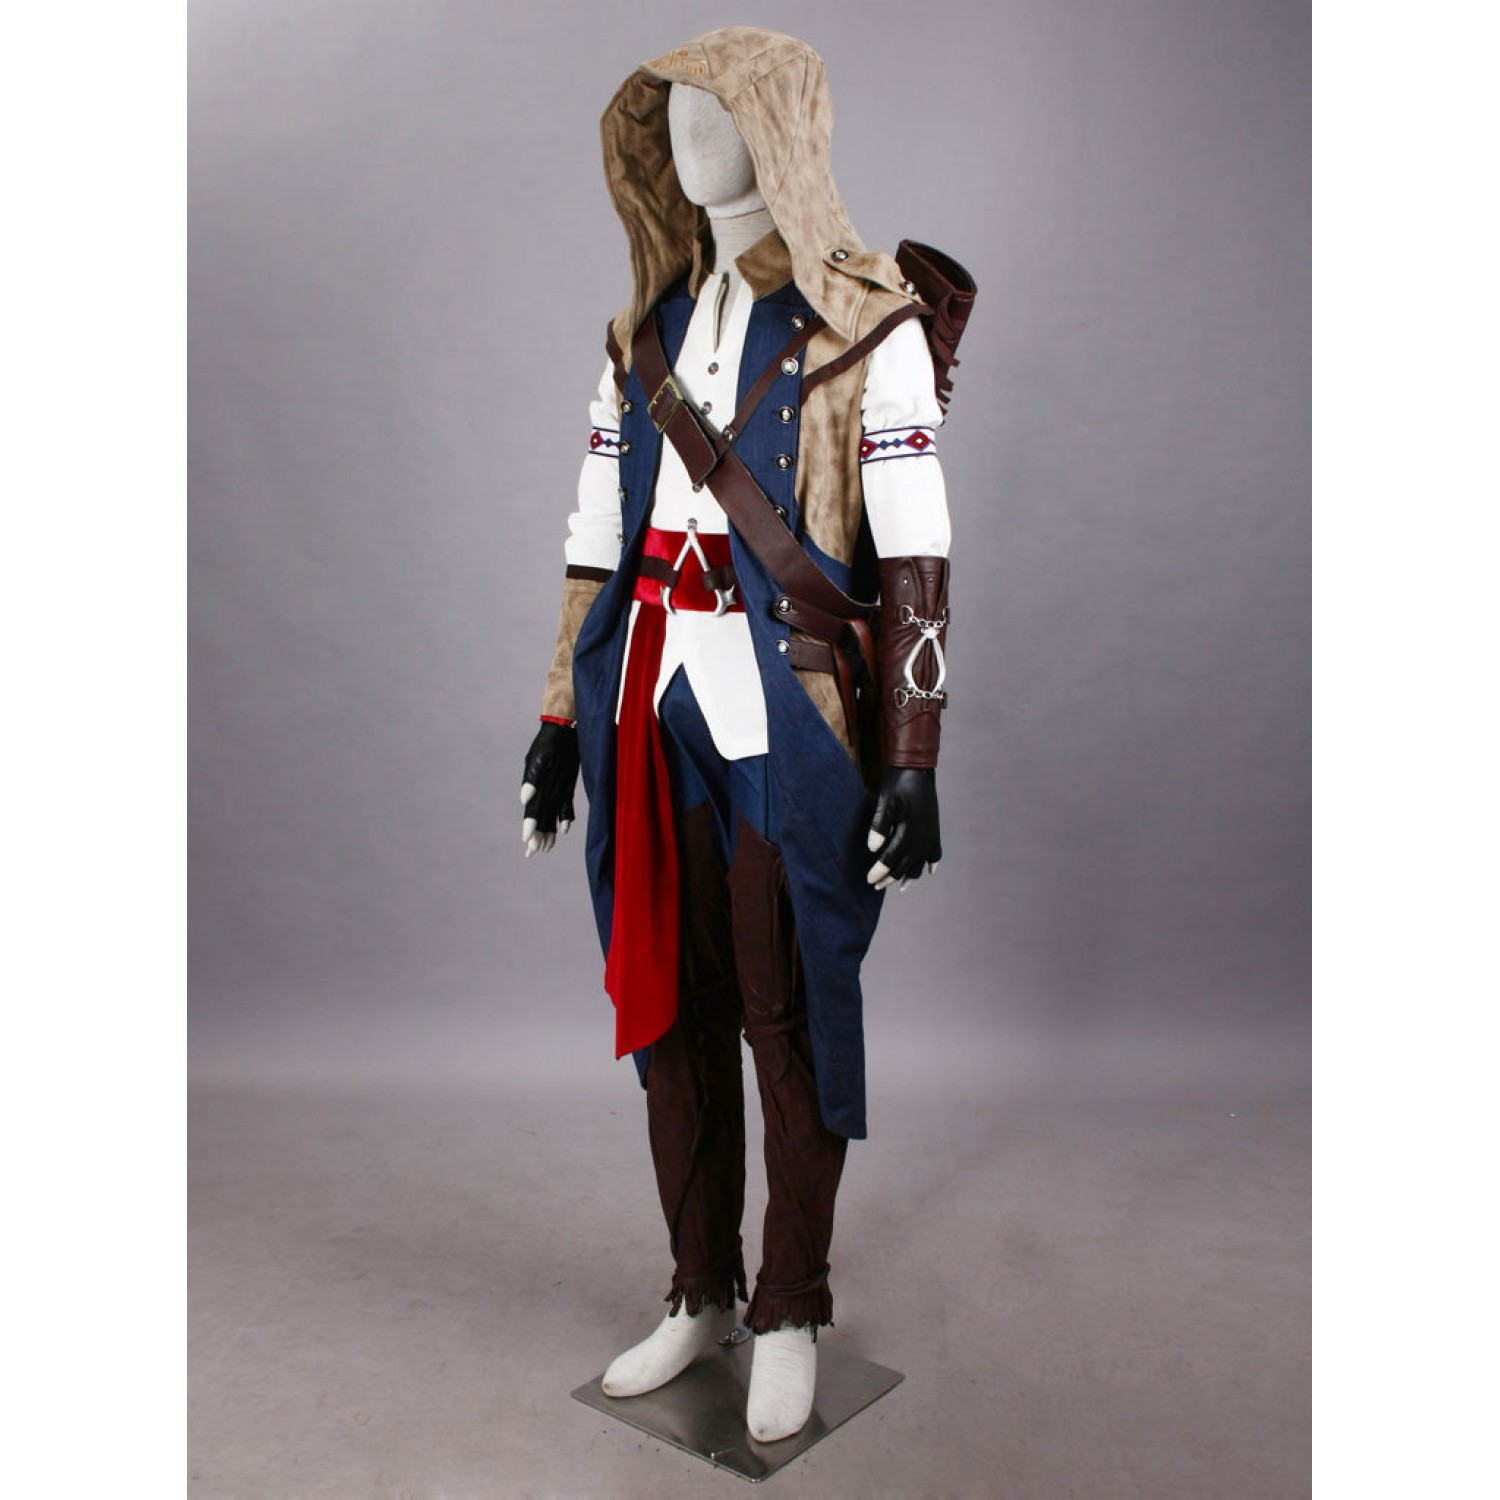 Assassin S Creed Connor Cosplay Costume Free Shipping 159 99